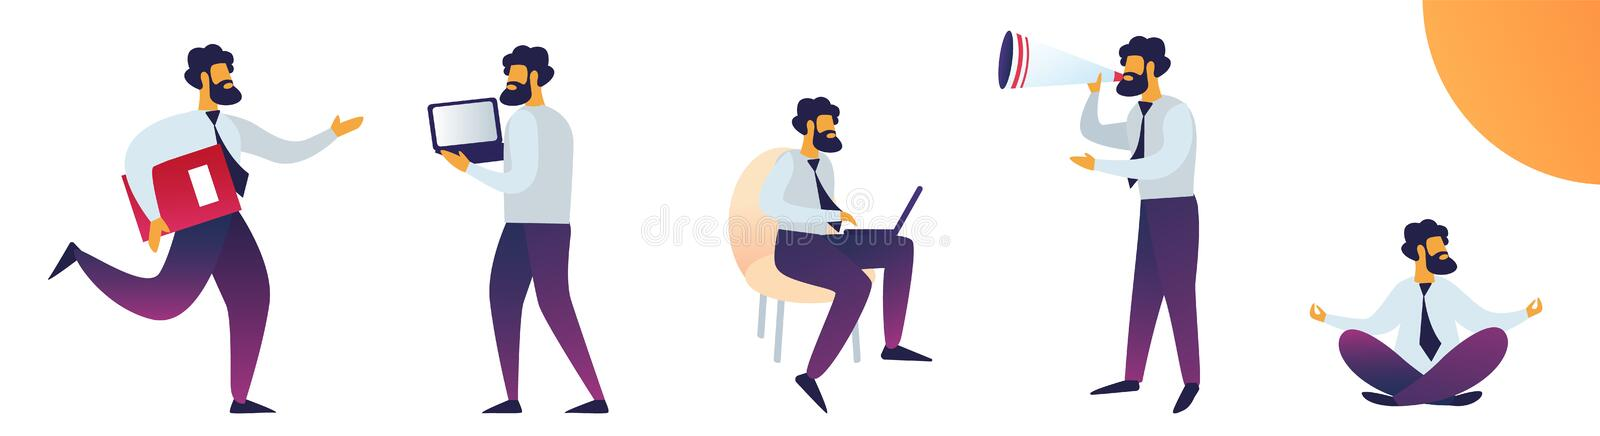 Work Stress and Mentality Vector Illustration. royalty free illustration